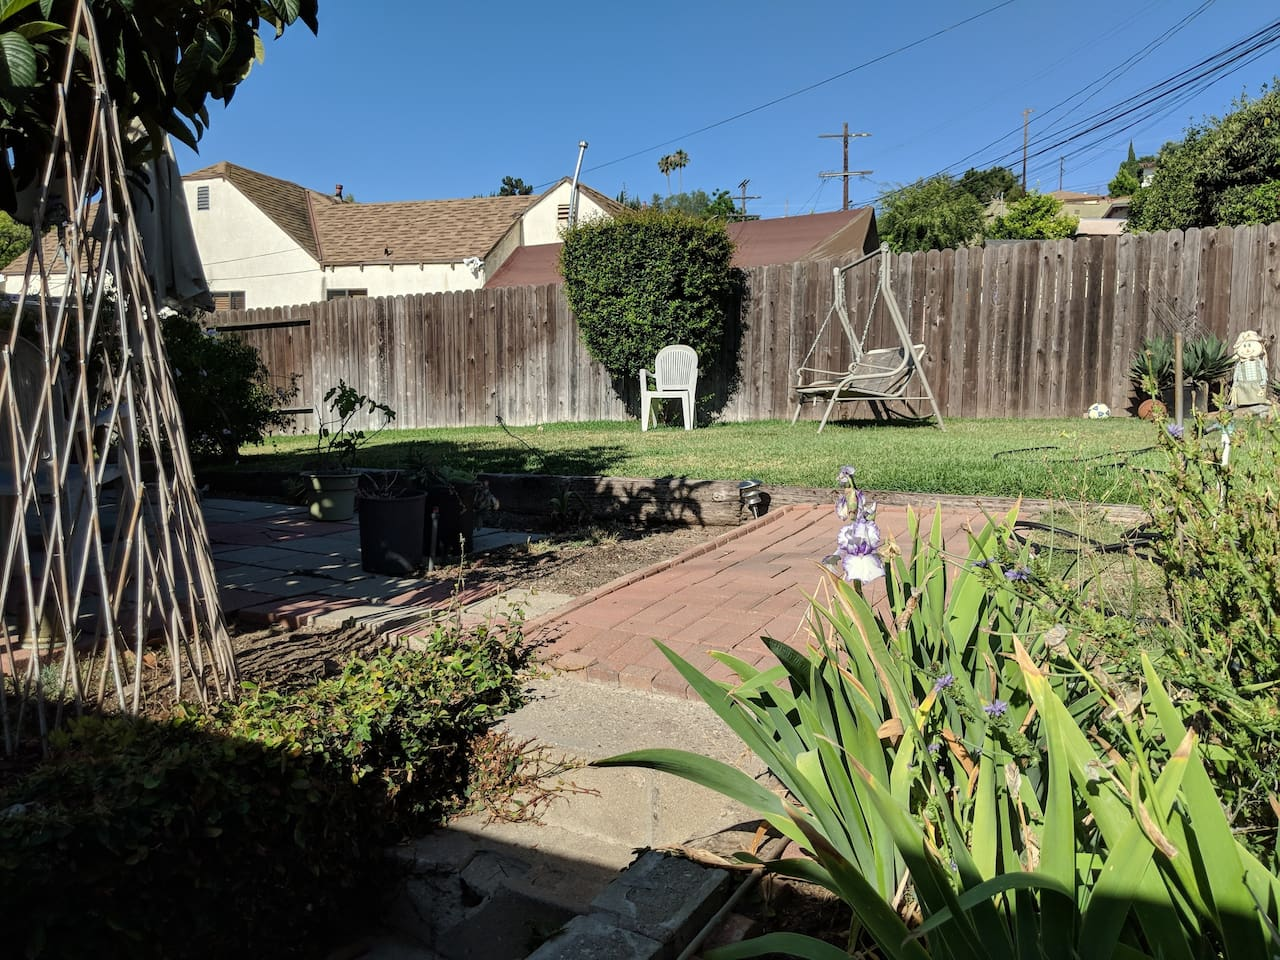 Garden with swing, BBQ and tables